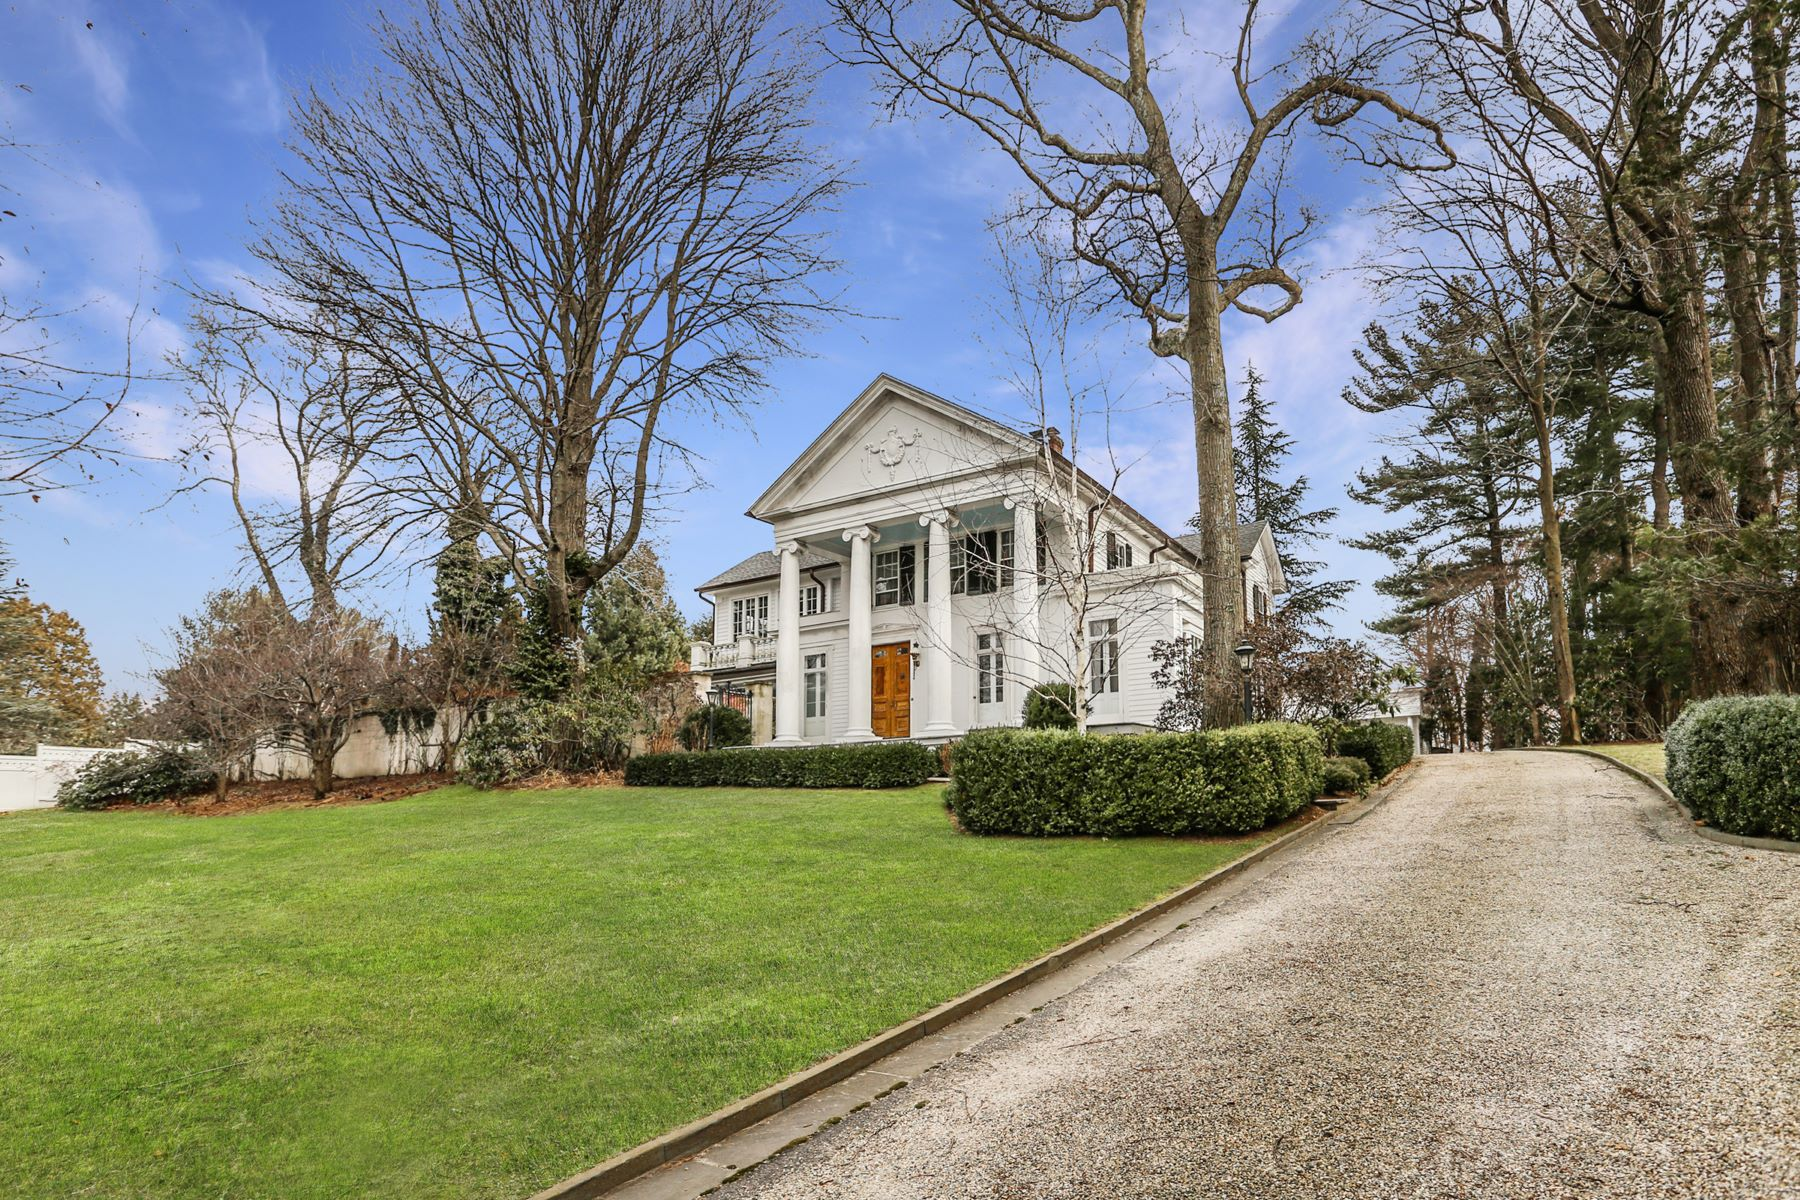 Single Family Homes for Sale at Stately Greek Revival on Sasco Hill 817 Sasco Hill Road, Fairfield, Connecticut 06824 United States